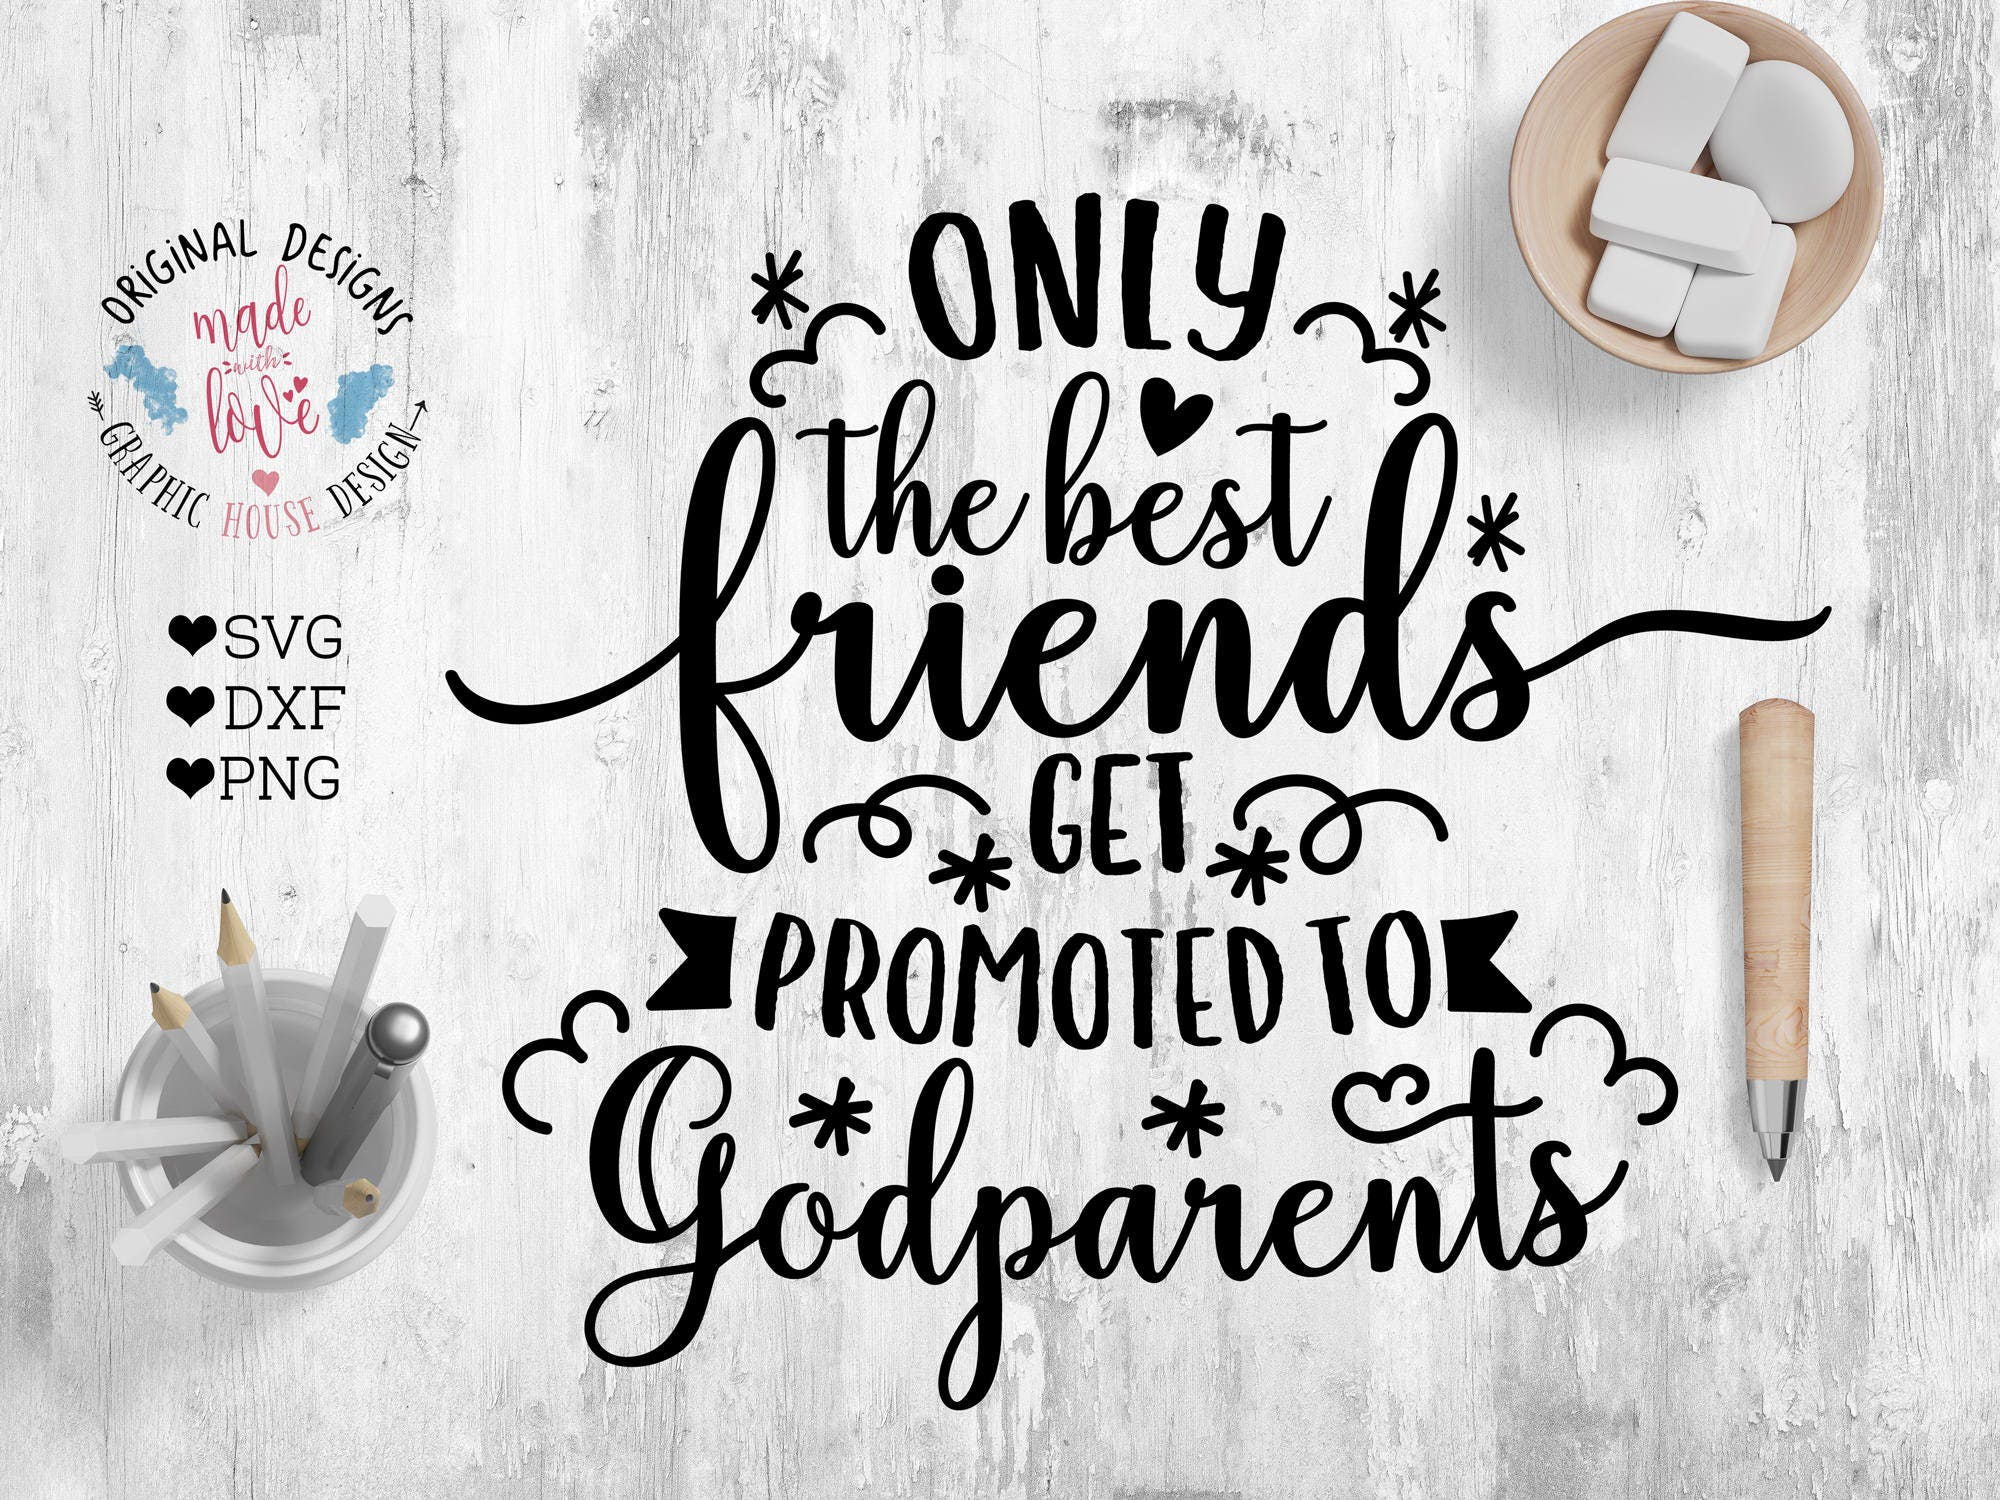 Godparents SVG Best Friends SVG Only The Best Friends Get